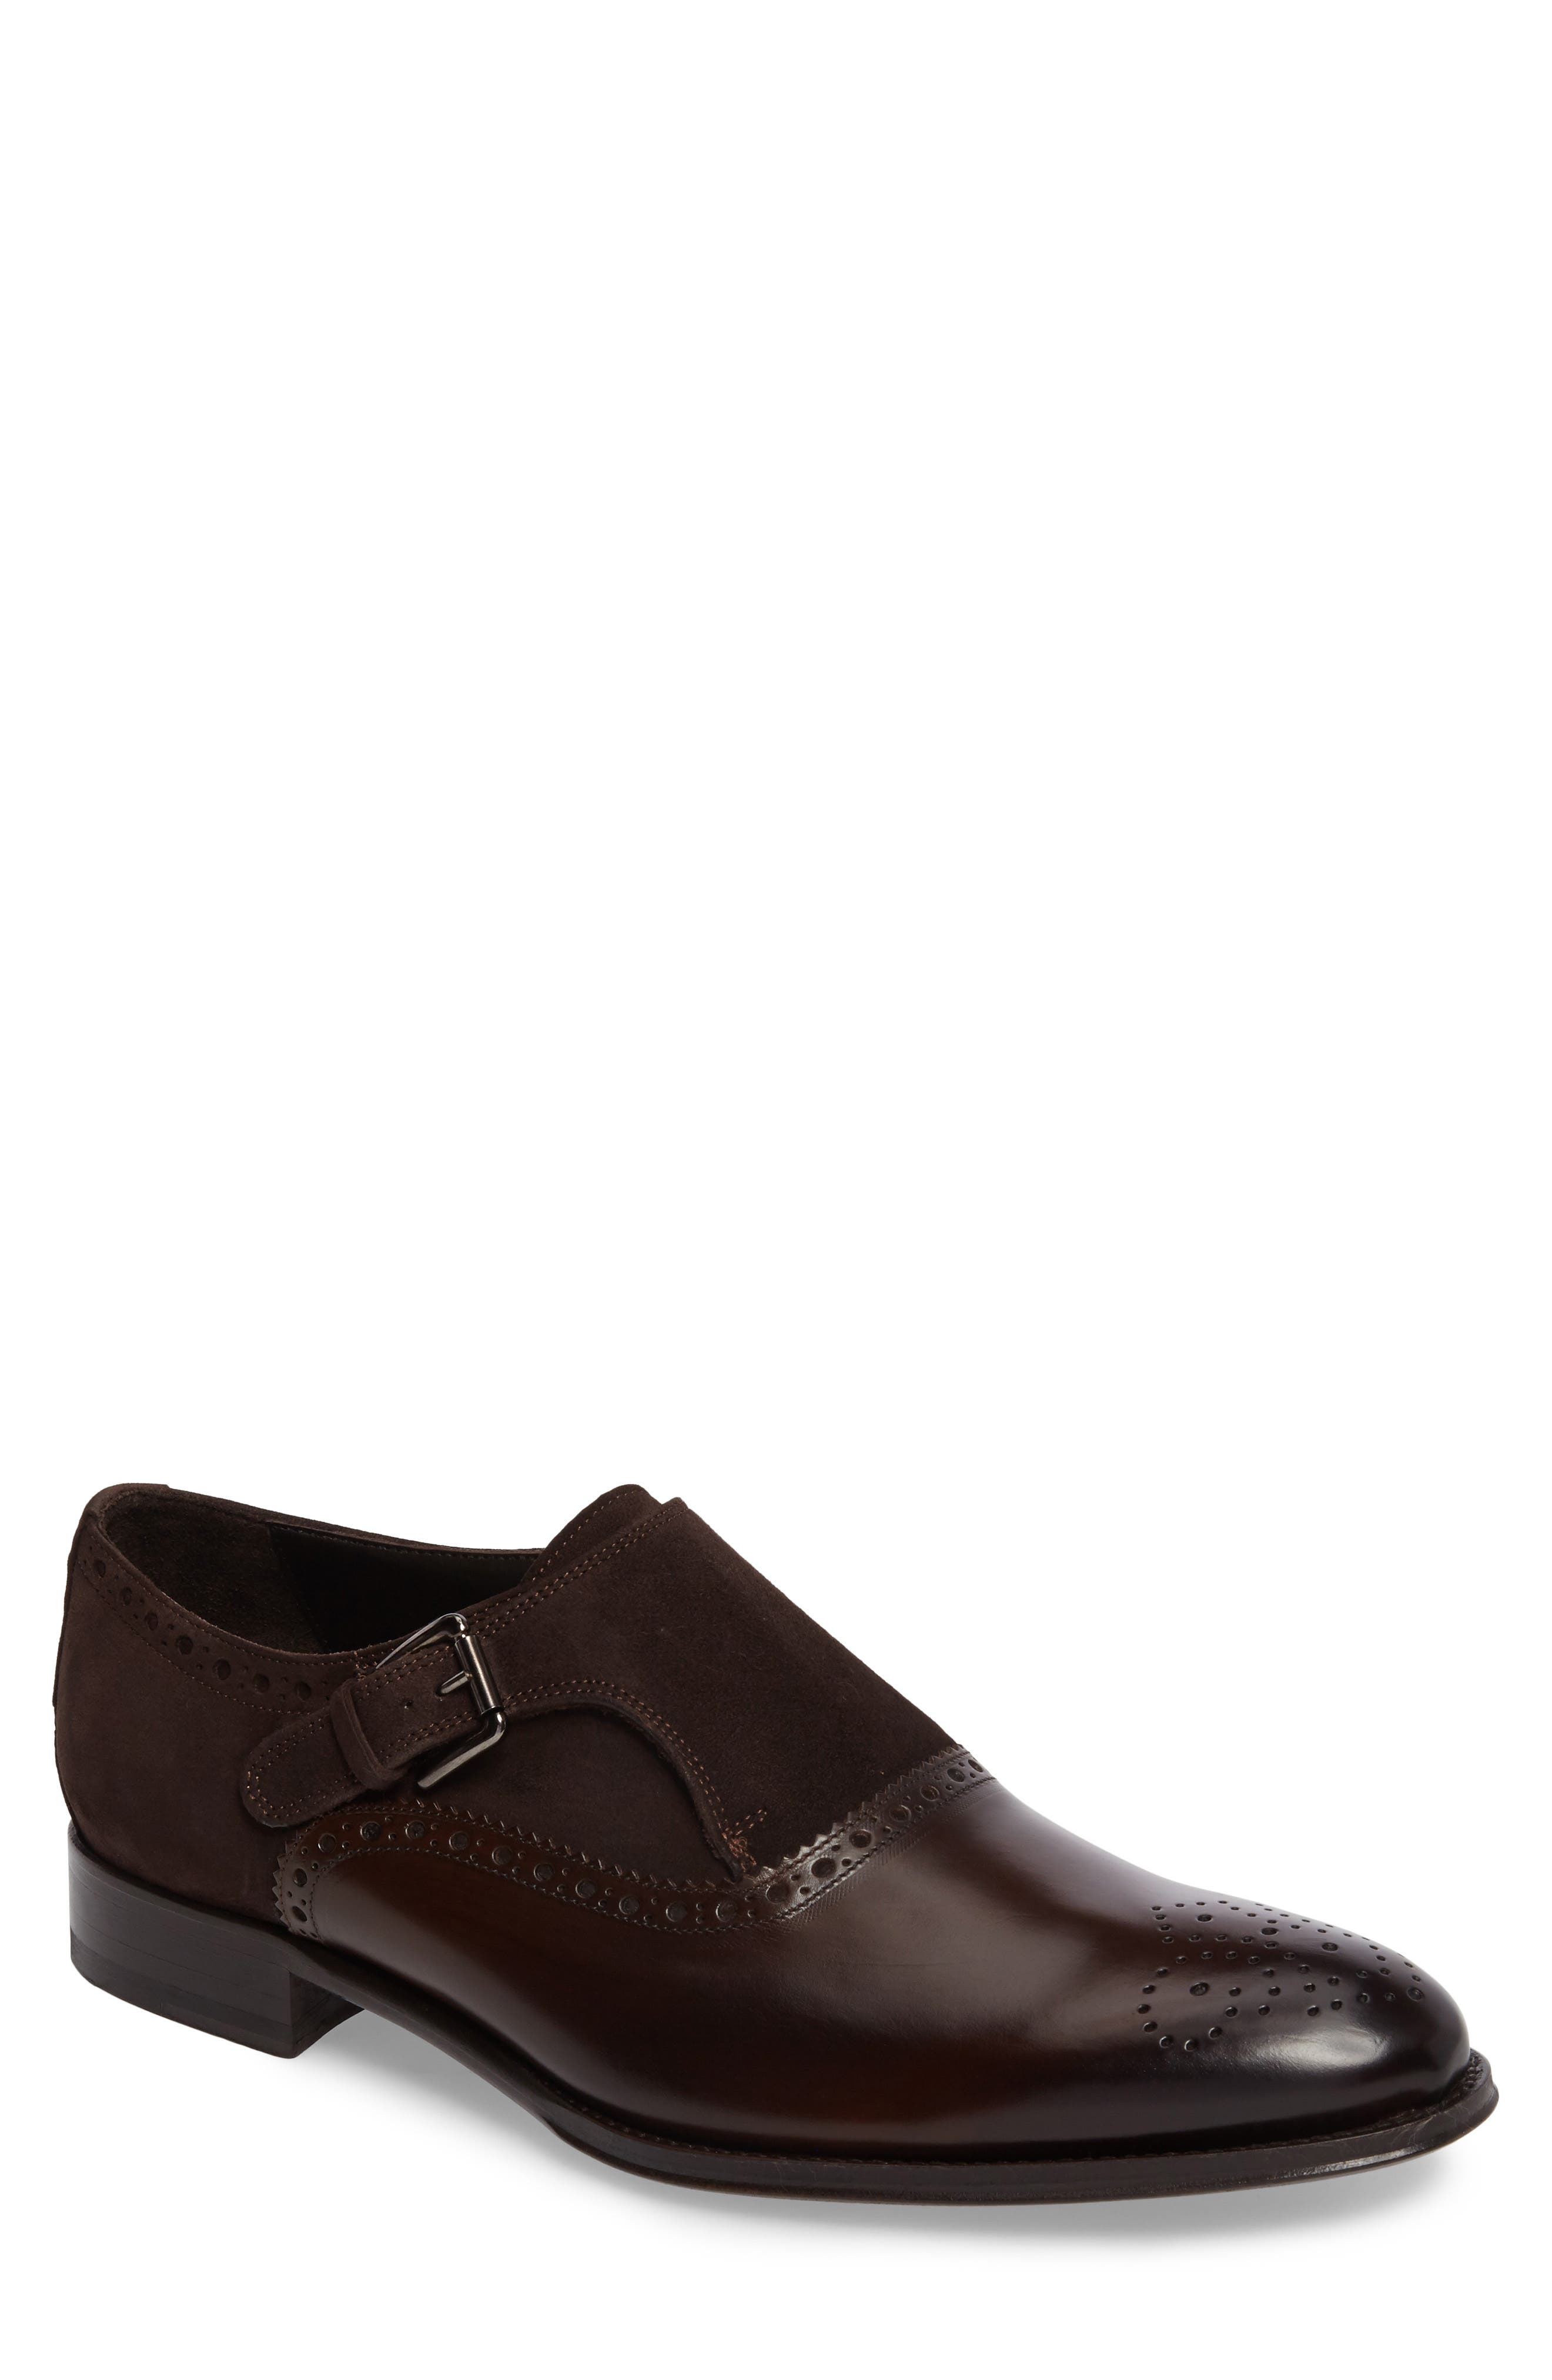 Arcadia Monk Strap Shoe,                         Main,                         color, Brown Leather/ Suede